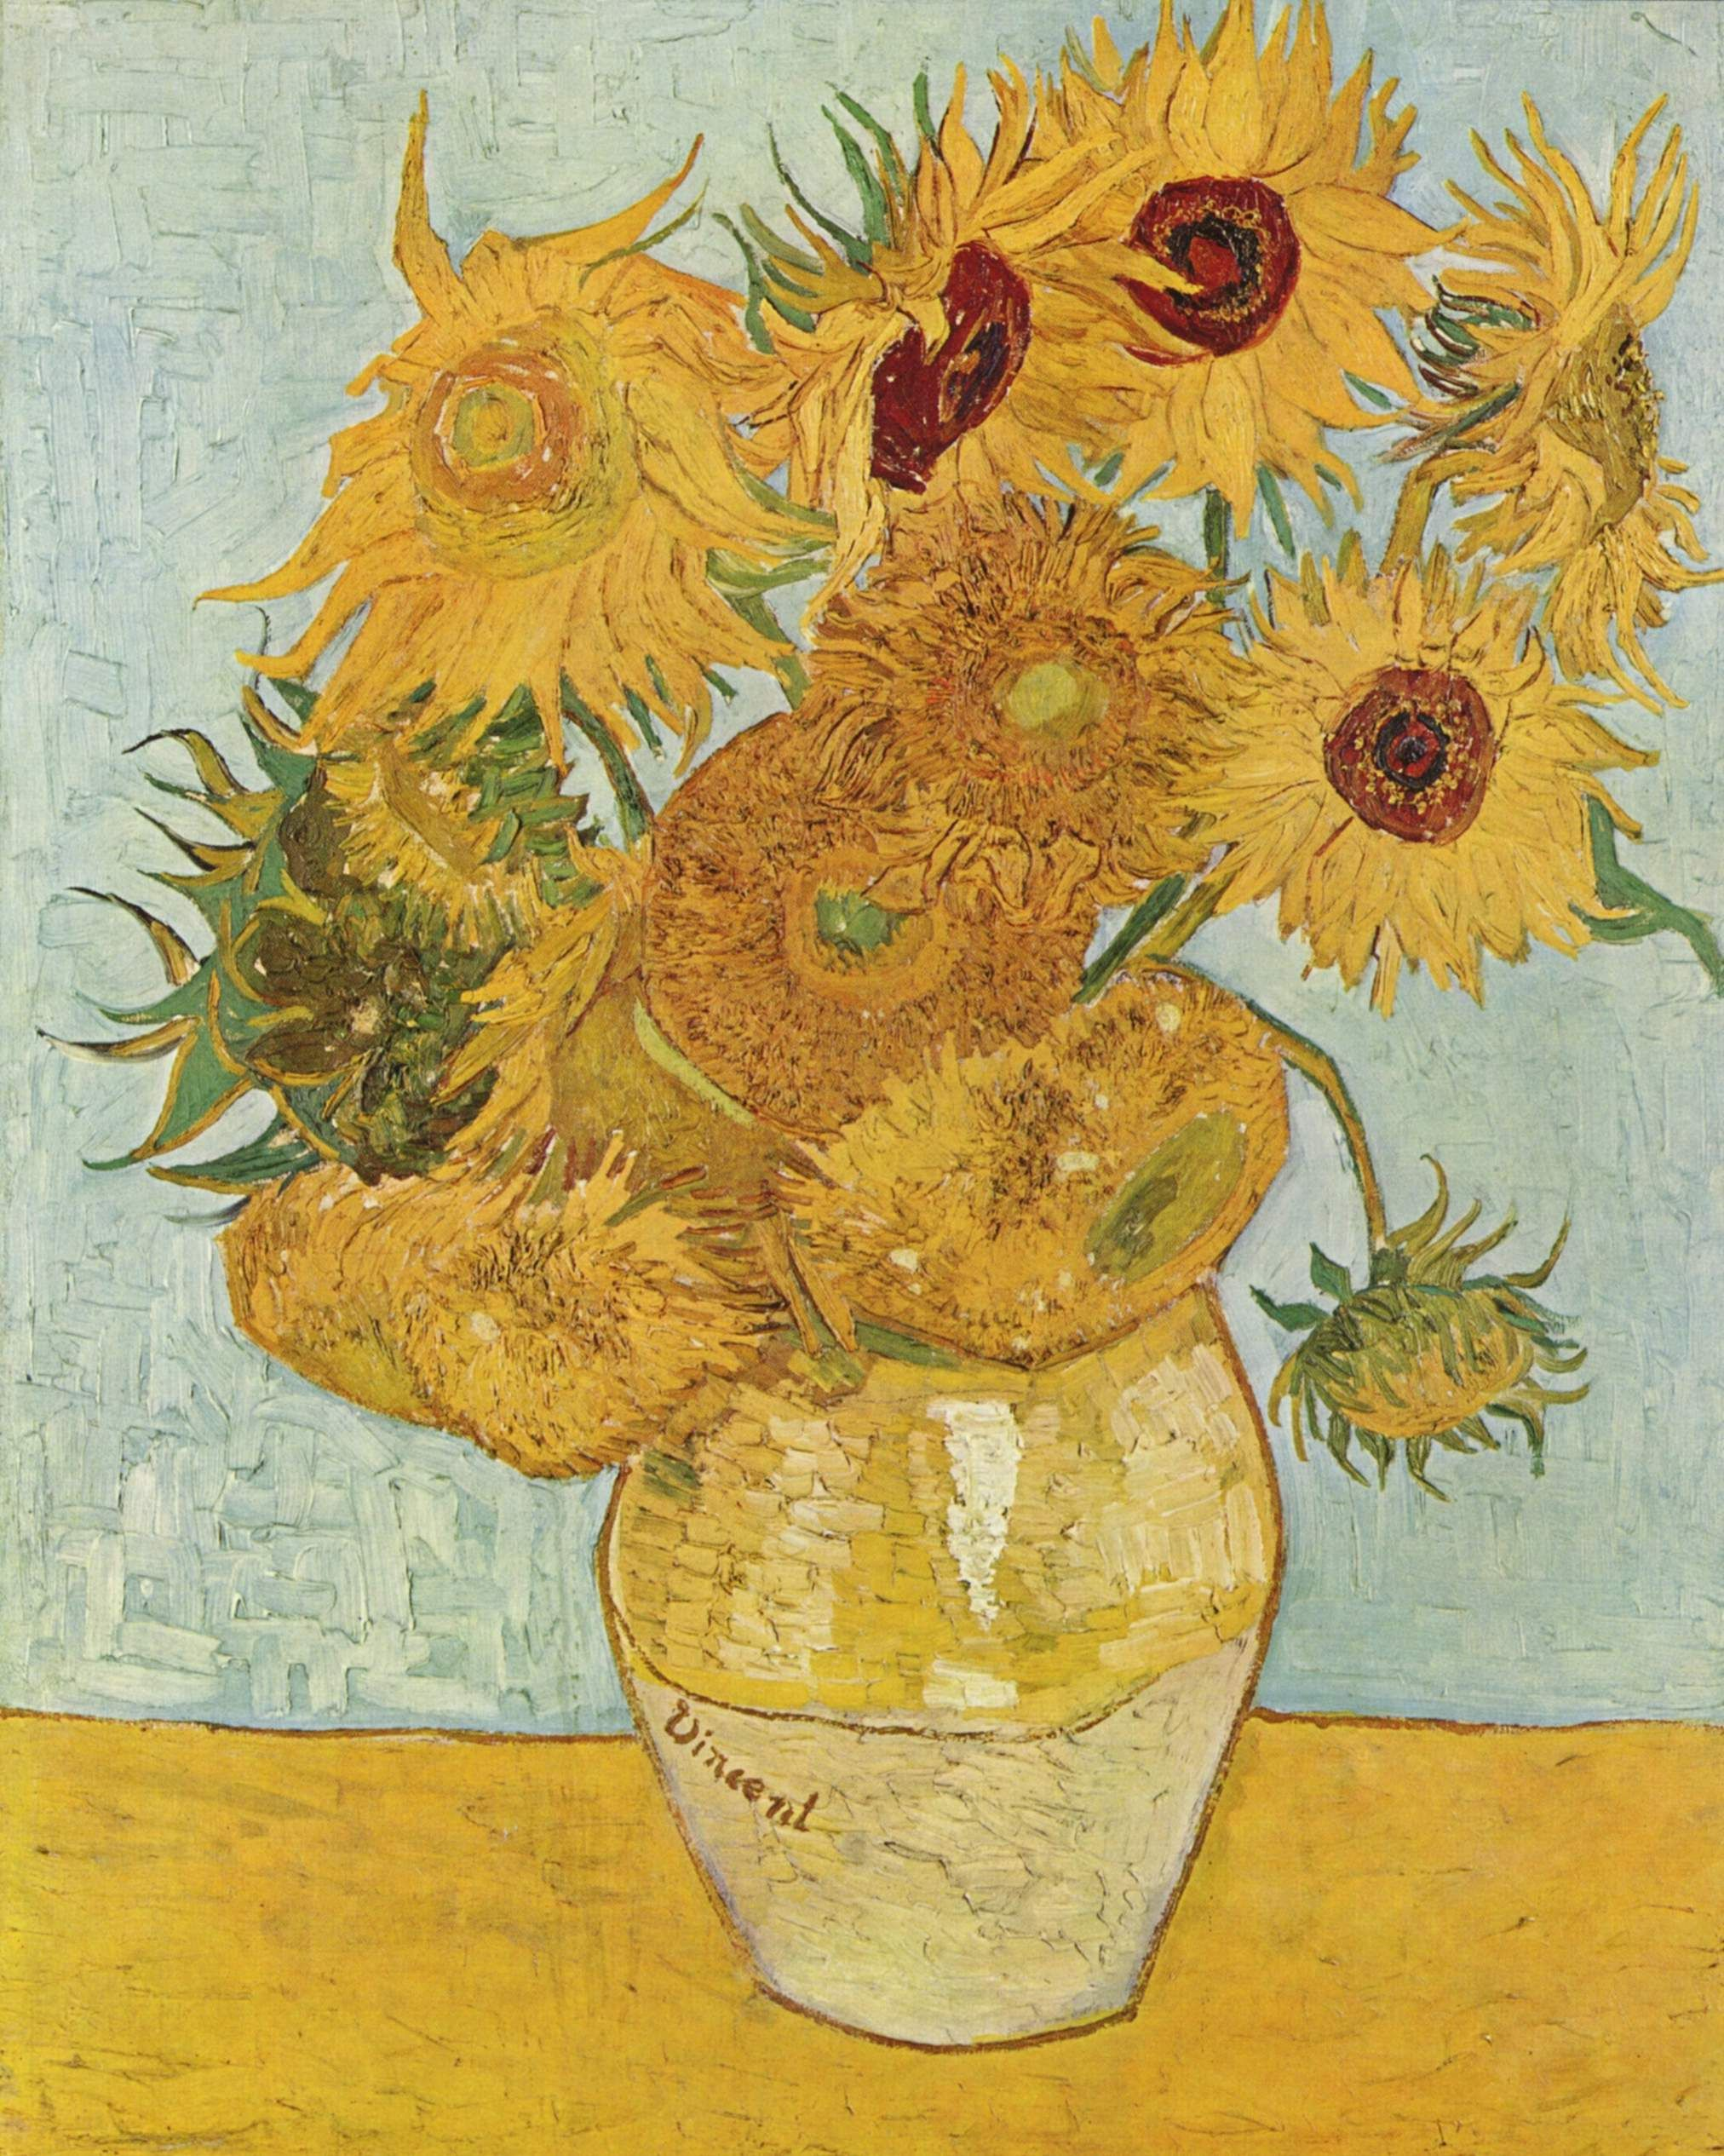 Vang Gogh Cuadros Vincent Van Gogh Inspiration And Favorite Paintings Pinterest